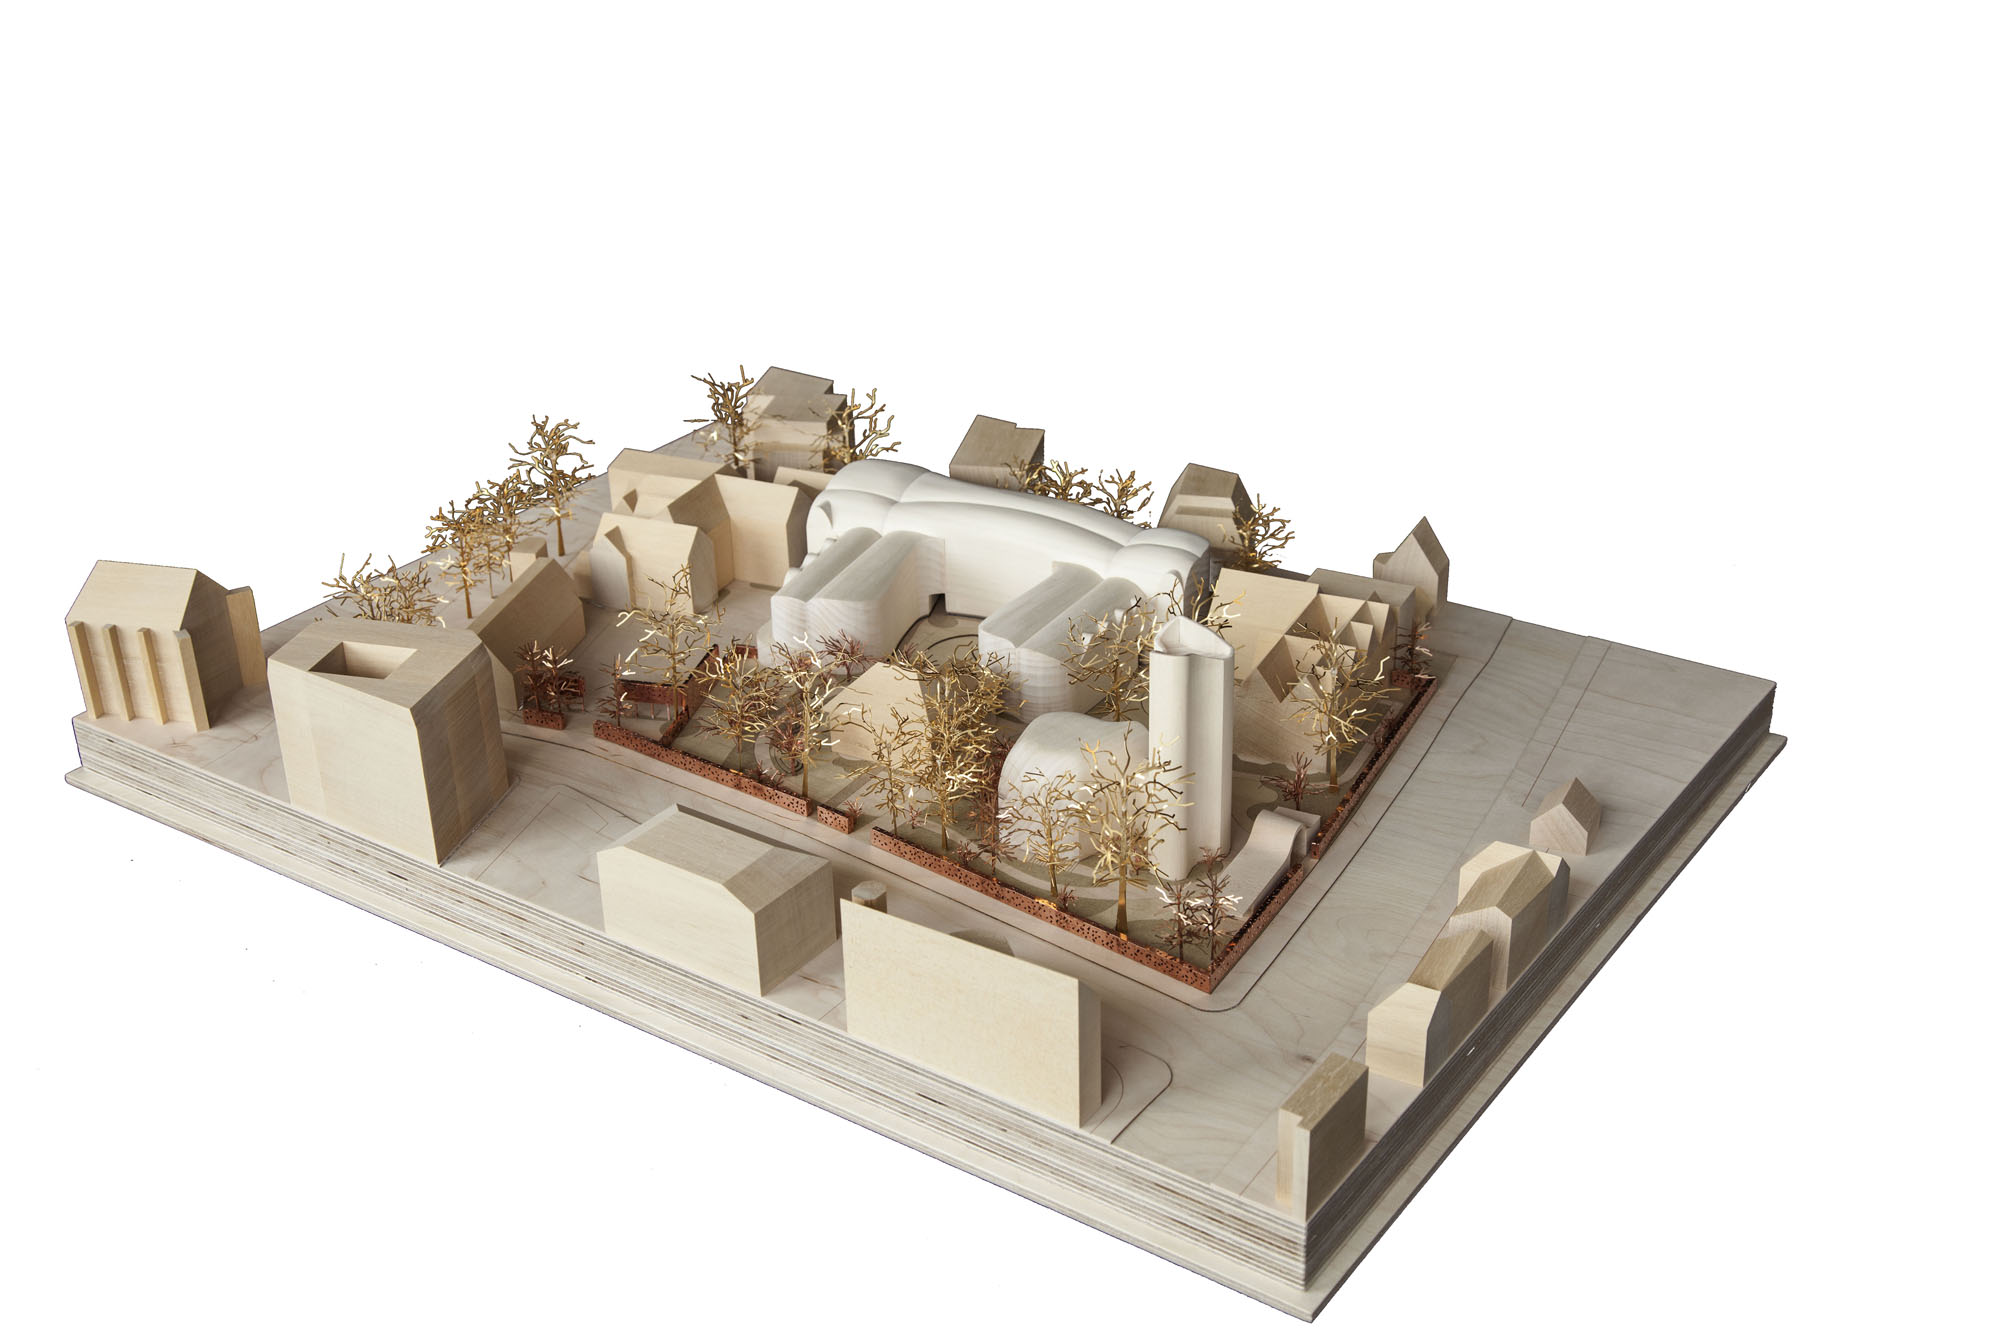 Model of the Development